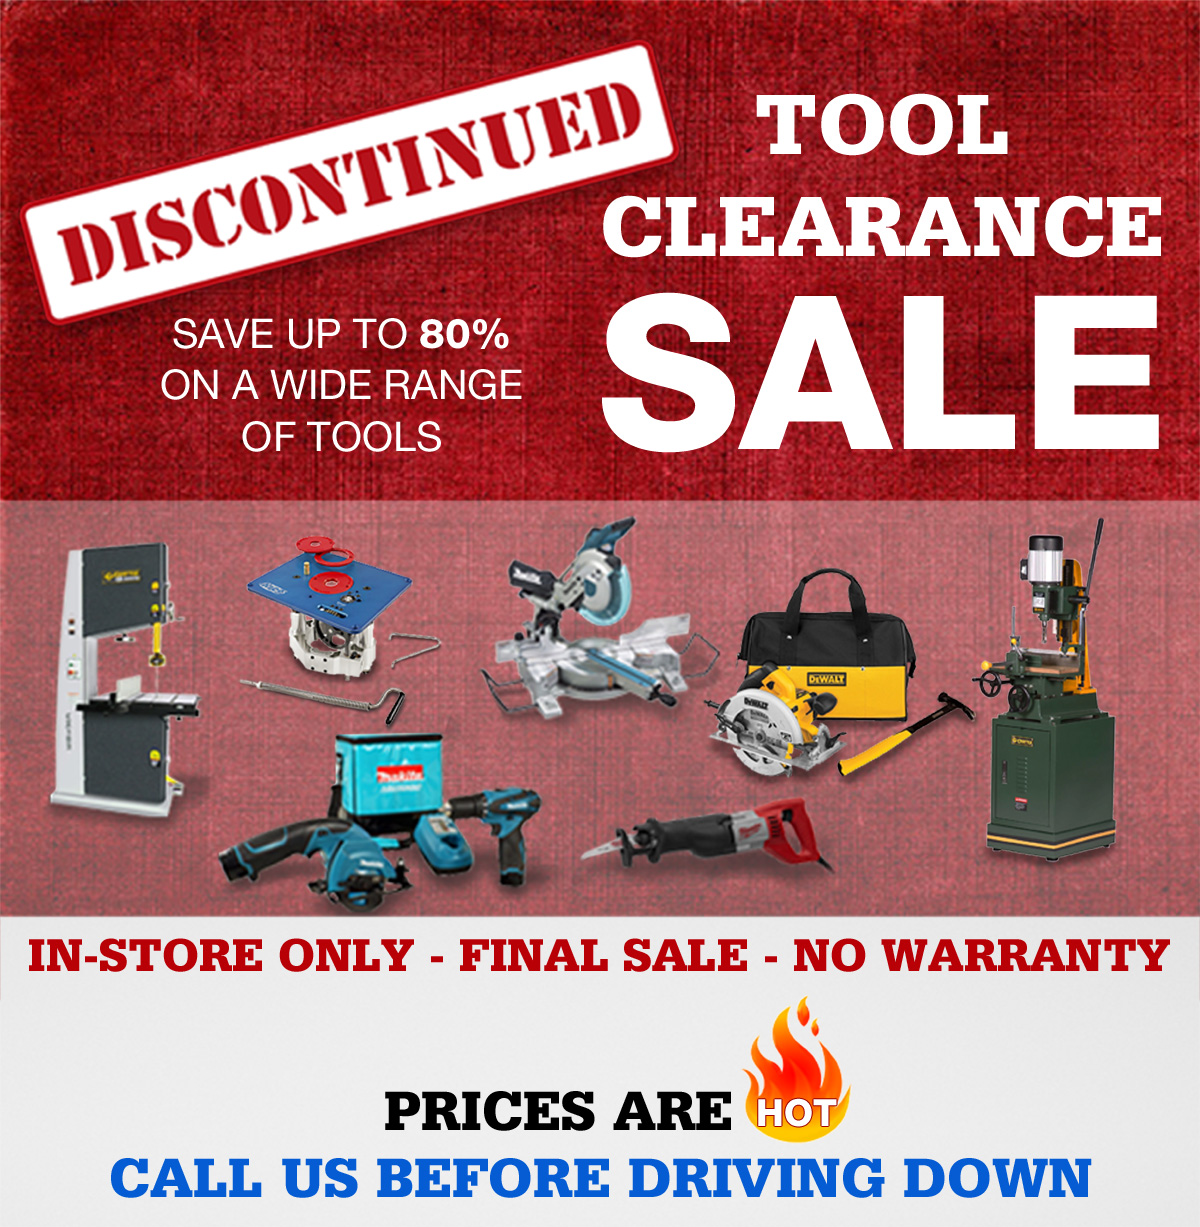 Discontinued Tool Clearance Sale